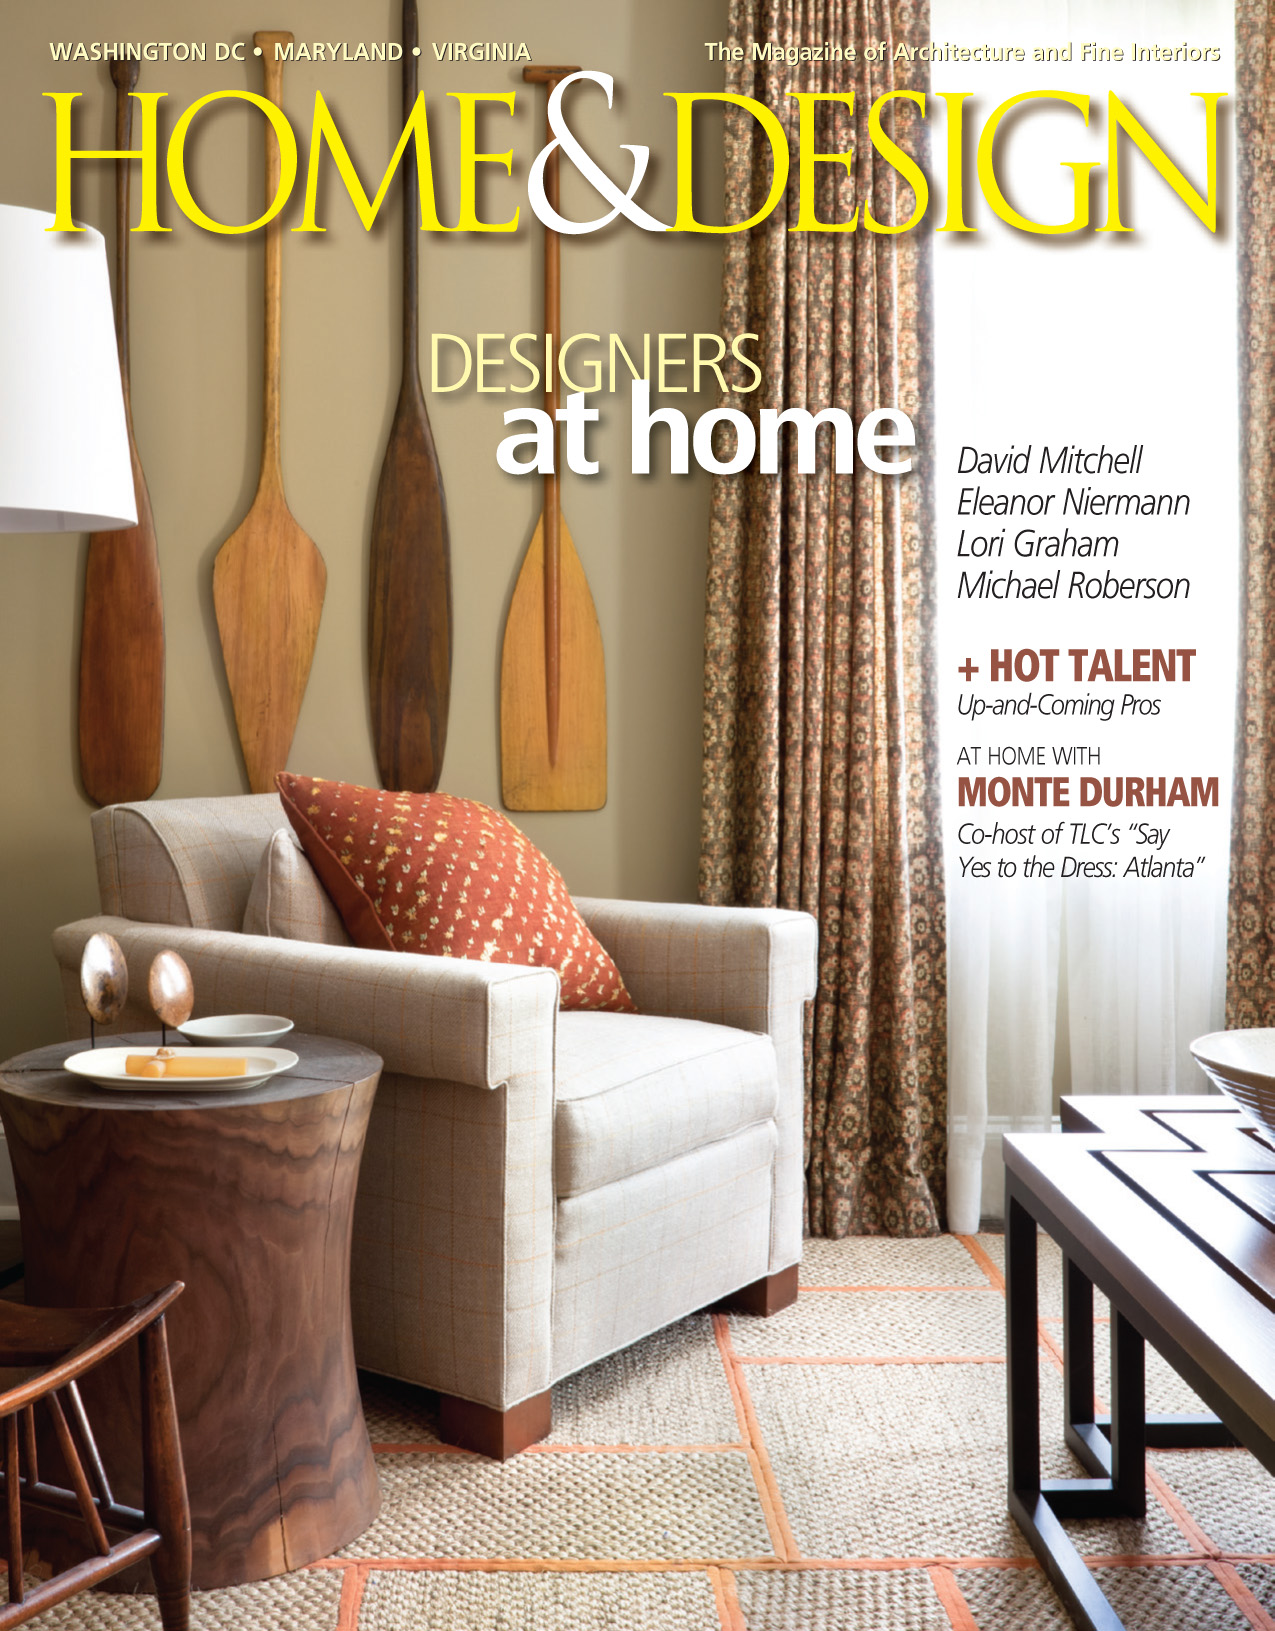 Home & Design Magazine; July / August 2014; Page 144-155; Michael Roberson Residence; Arlington, VA